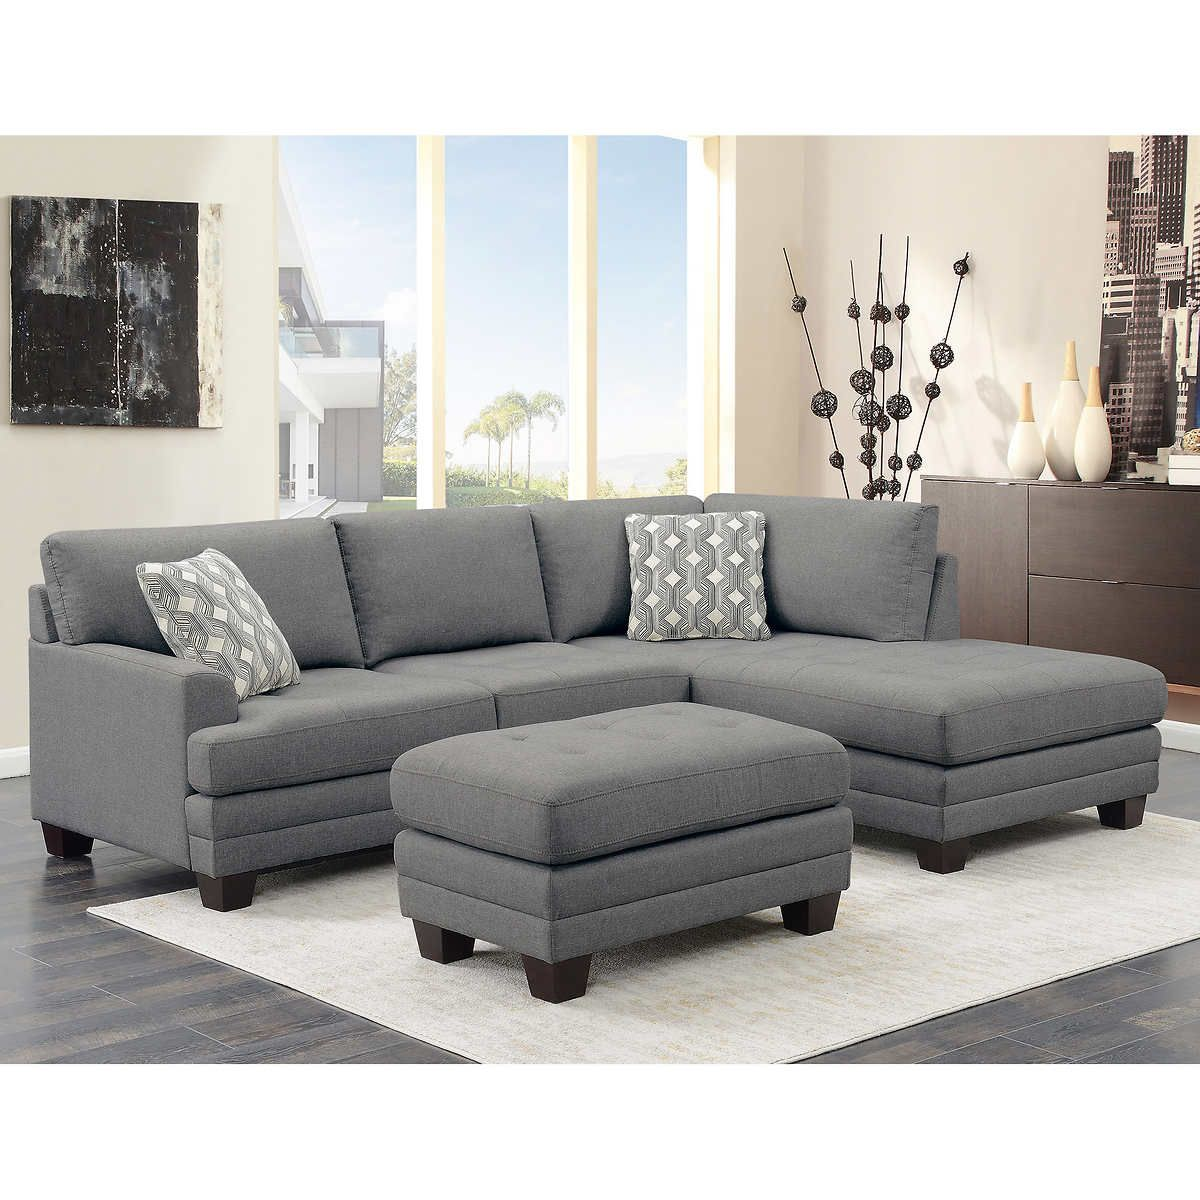 Mitch Fabric Sectional With Ottoman Sectional Sofa Ottoman In Living Room Grey Sectional Sofa